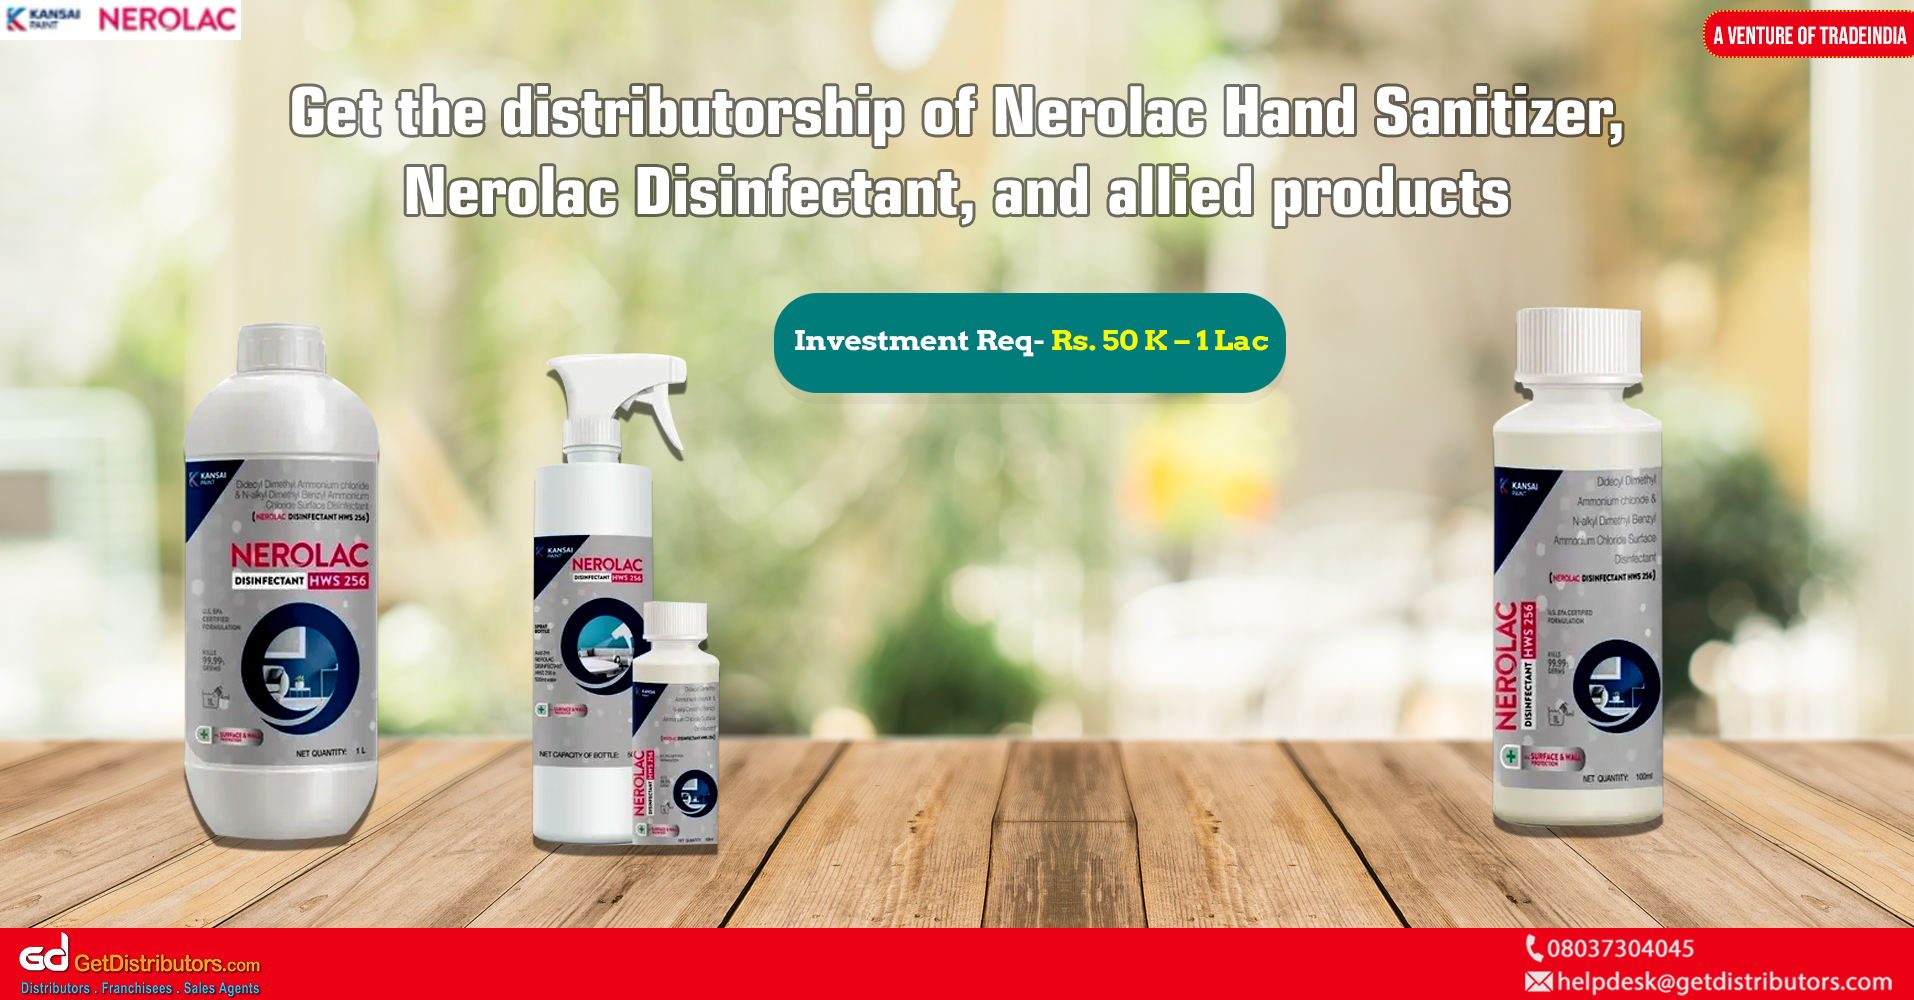 Quality assured hand sanitizers and surface disinfectants